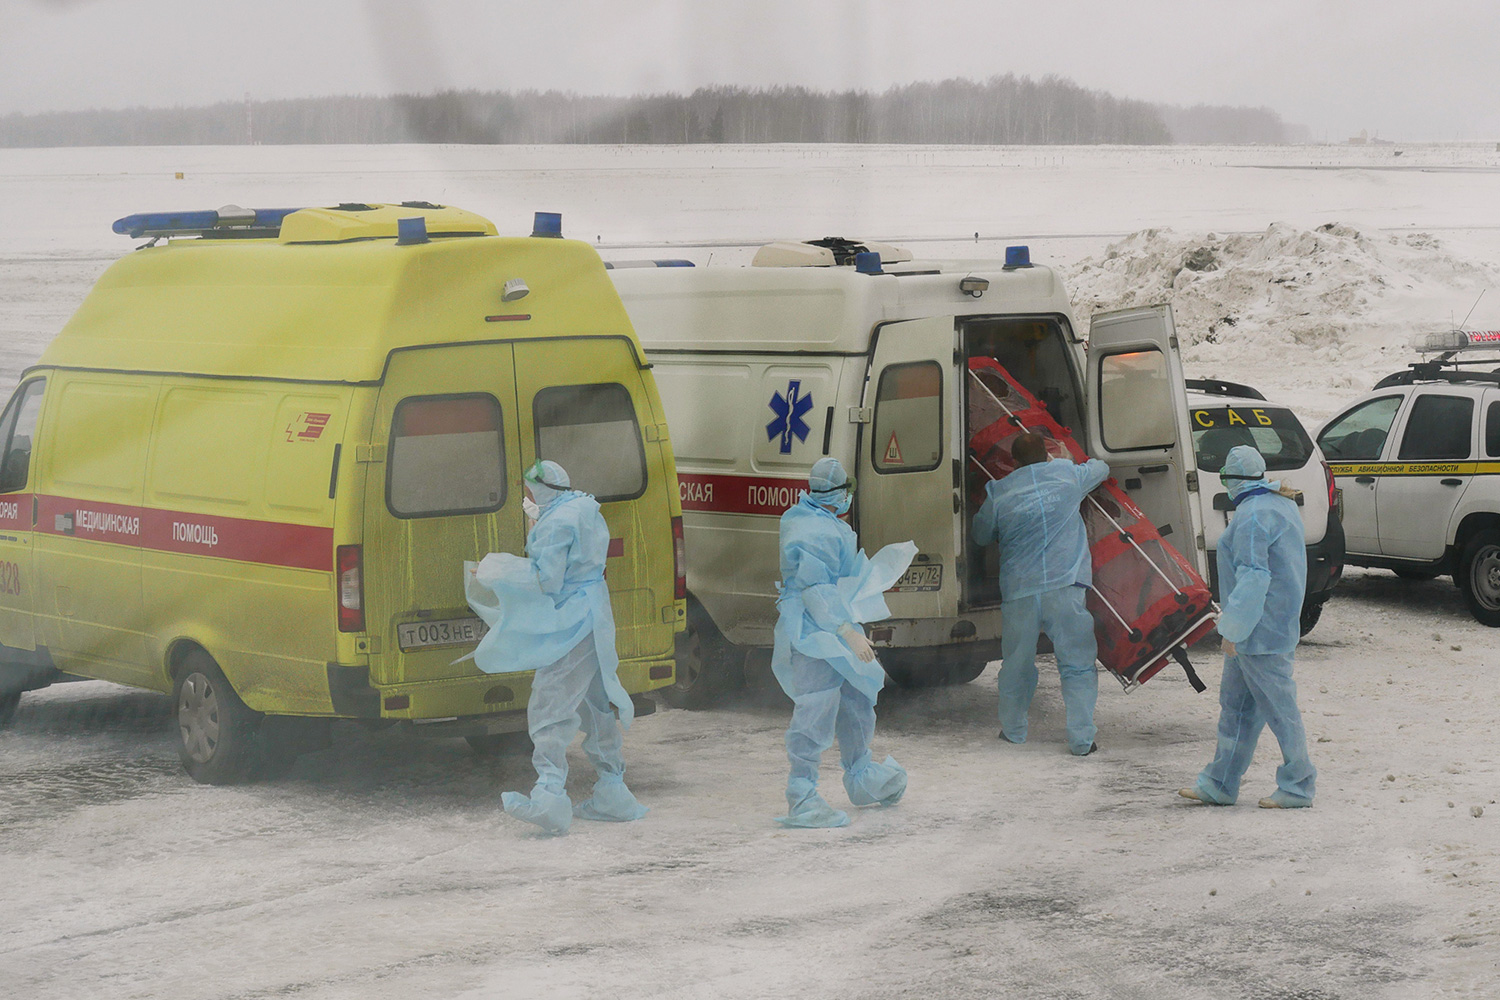 The photo shows several workers in blue protective suits standing outside their ambulances in what appears to be freezing weather.